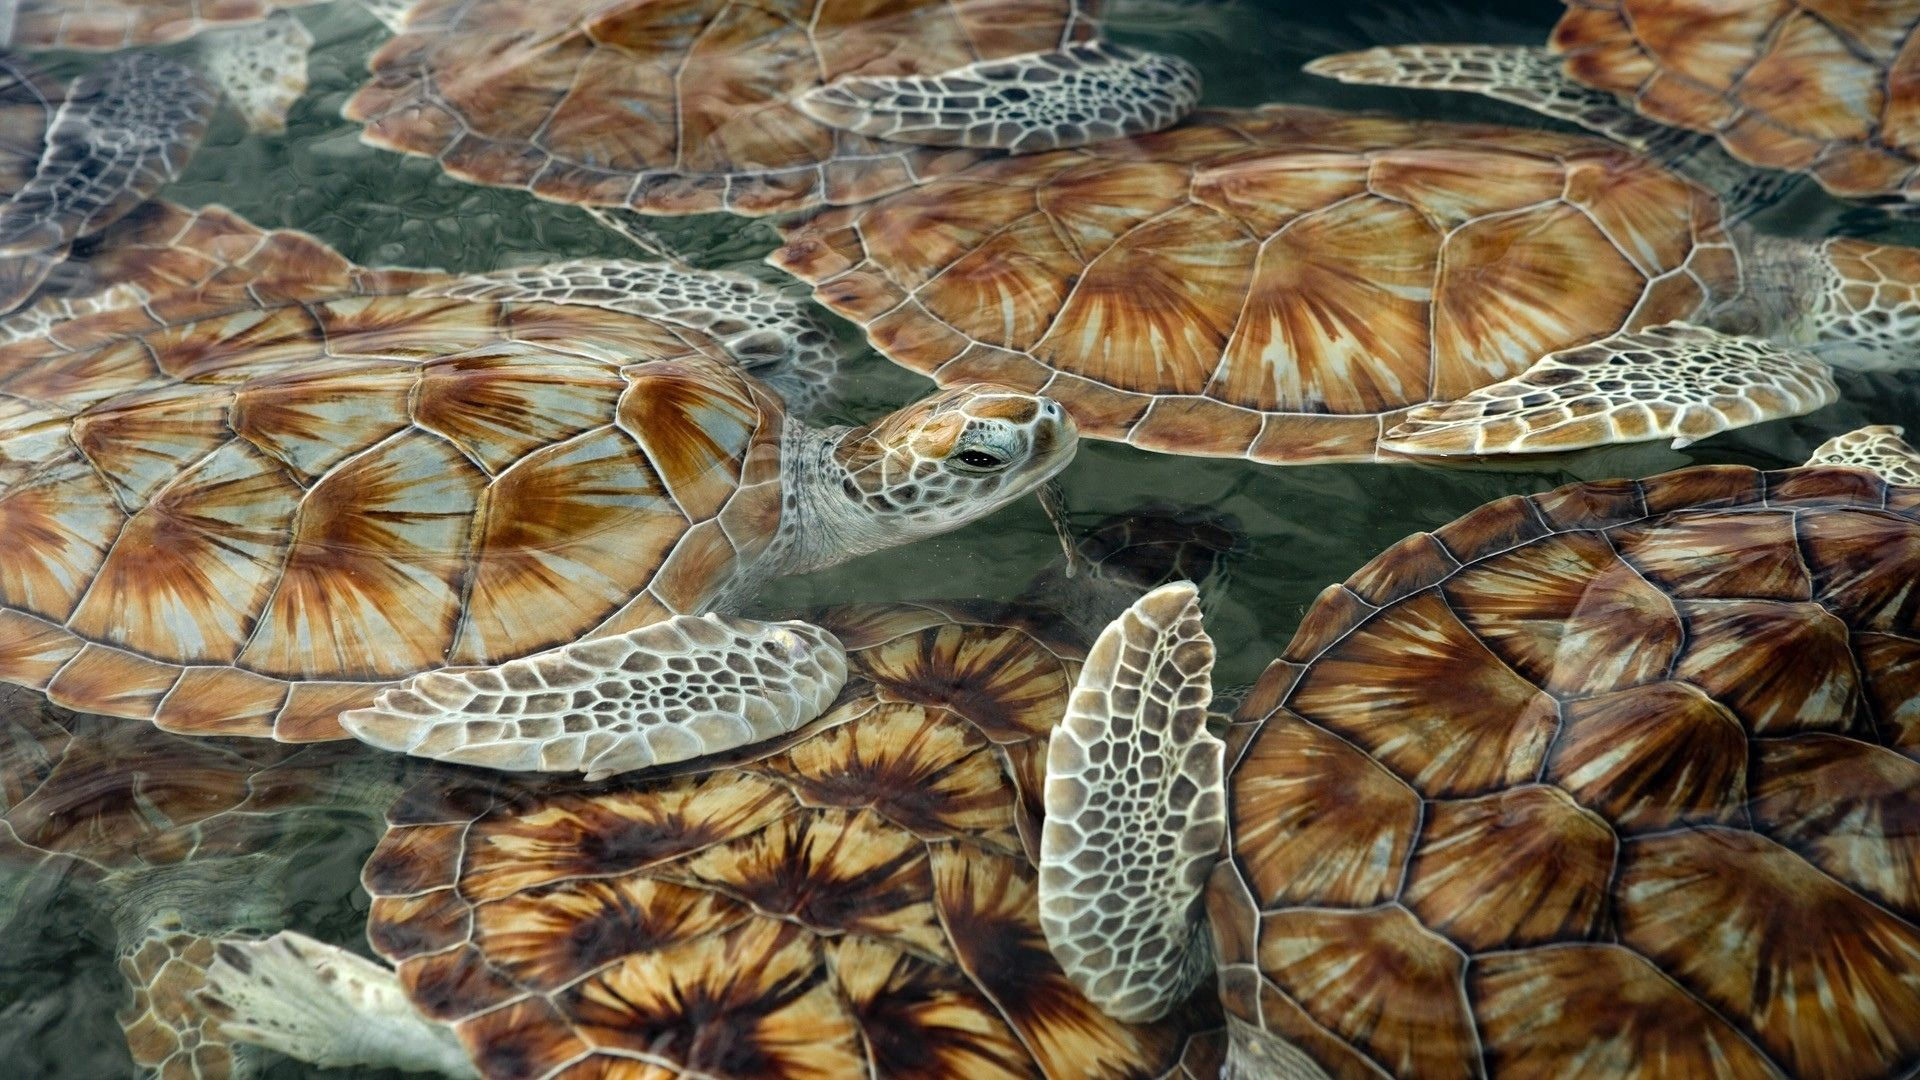 119313 download wallpaper Animals, Turtles, Sea, Swim, Float screensavers and pictures for free